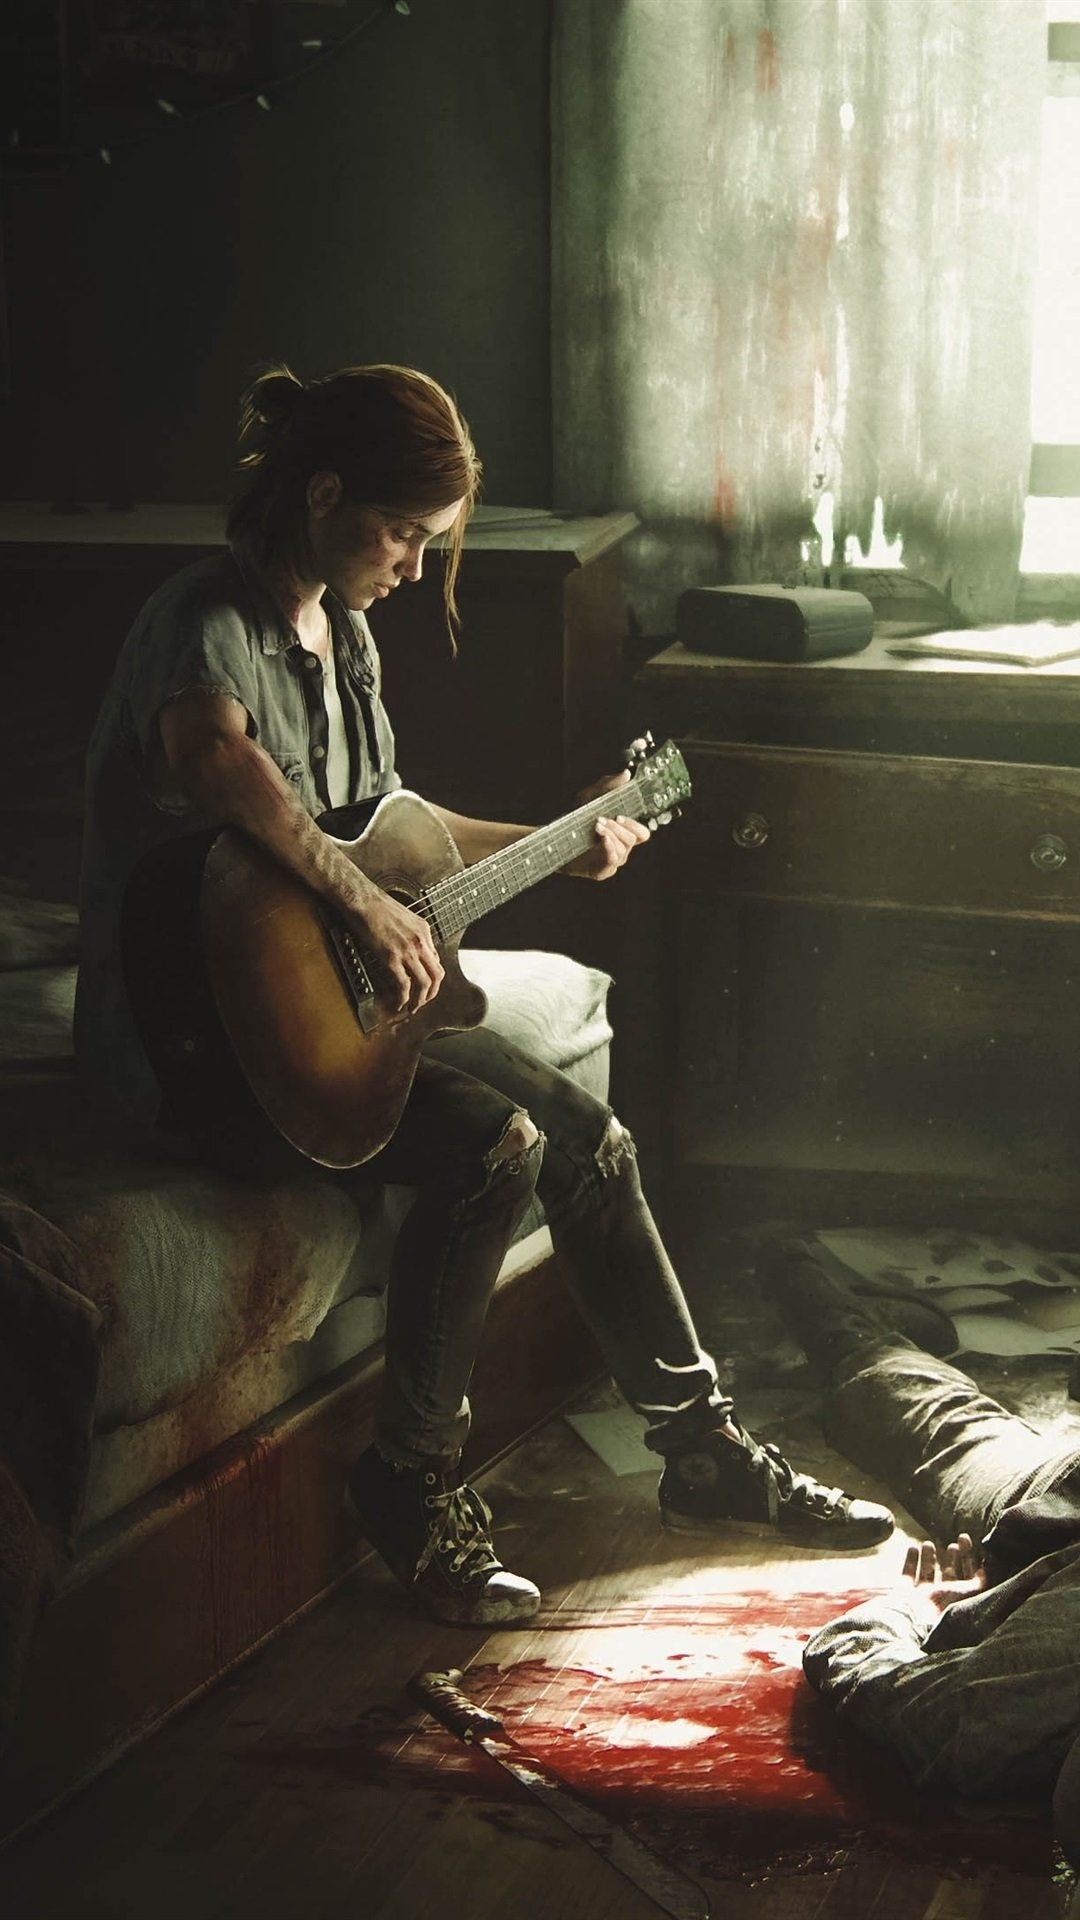 The Last of Us Part II girl guitar 1080x1920 iPhone 8766S 1080x1920